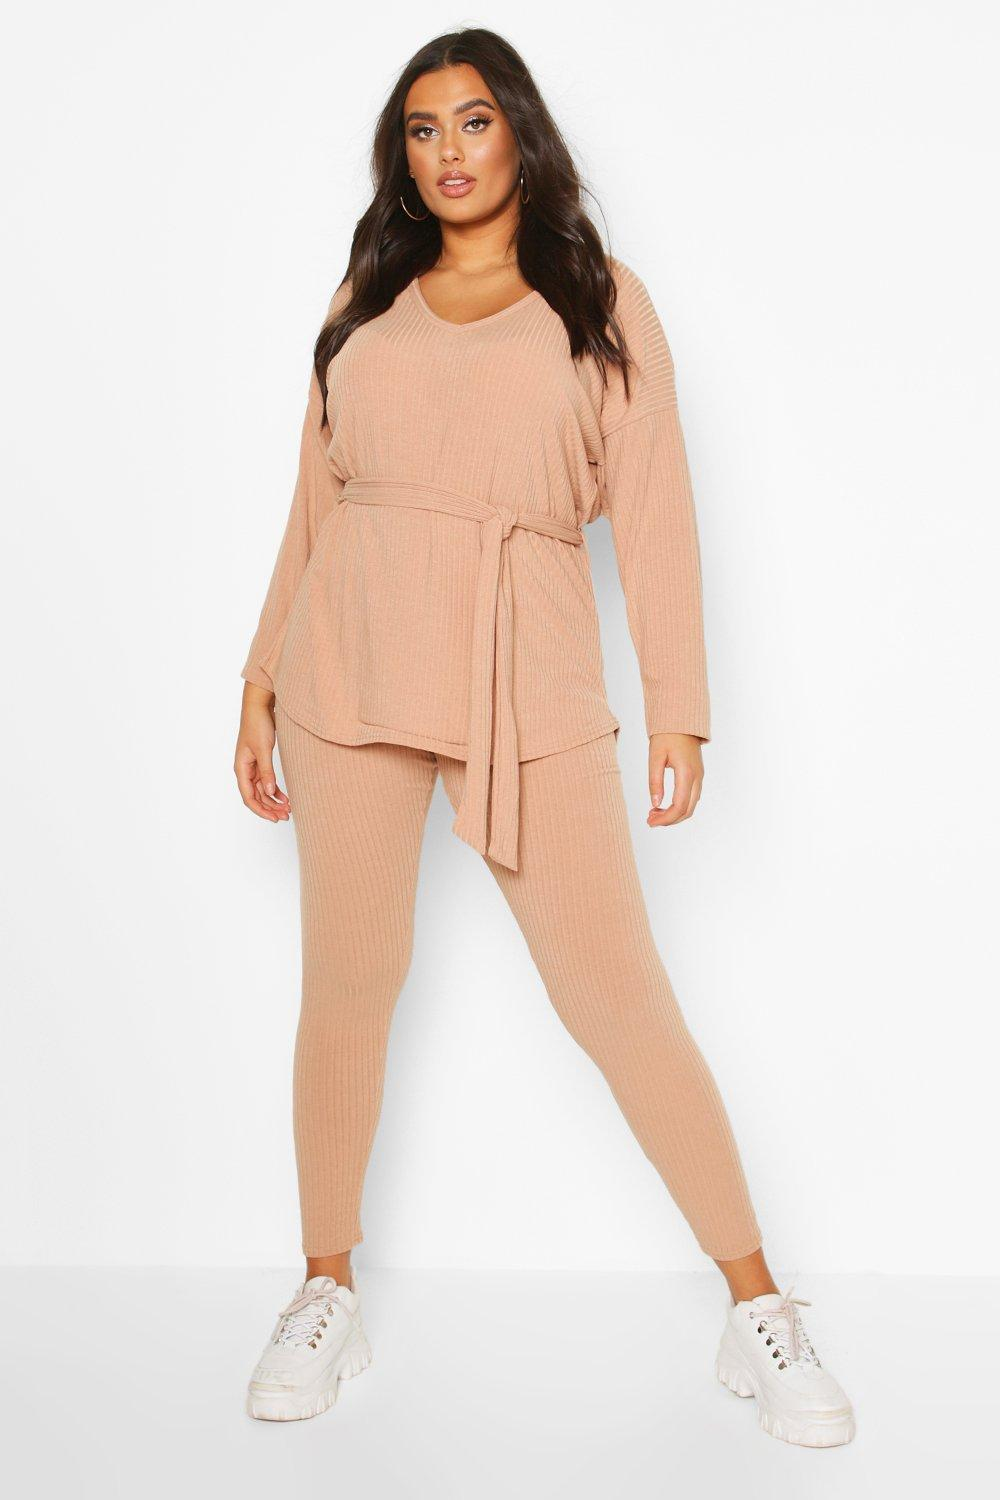 Plus Soft Rib Top & Legging Two-Piece 18